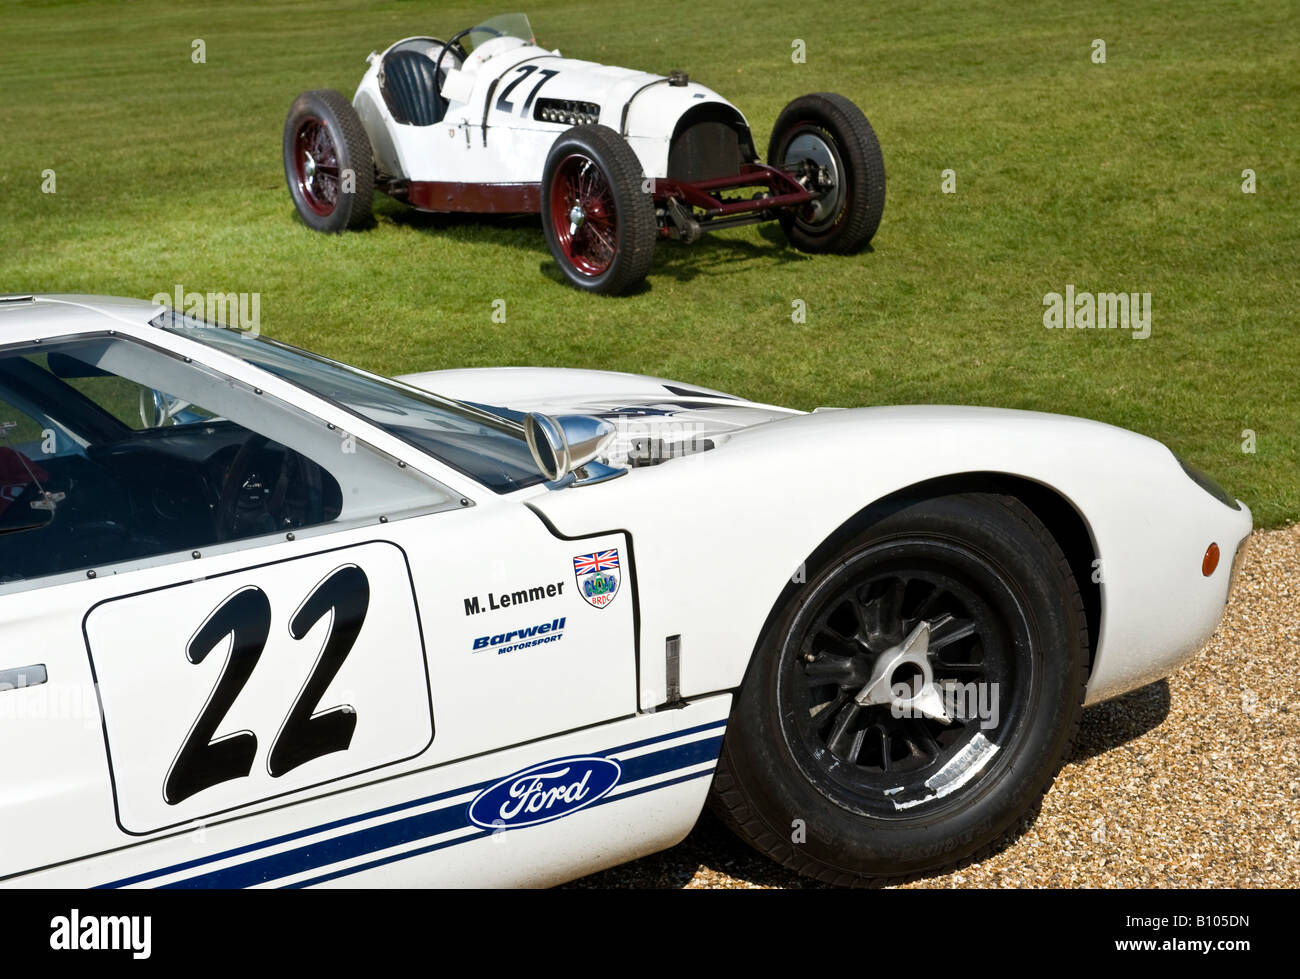 Ford Gt40 With Vintage Classic Formula One F1 Racing Car 1930s In